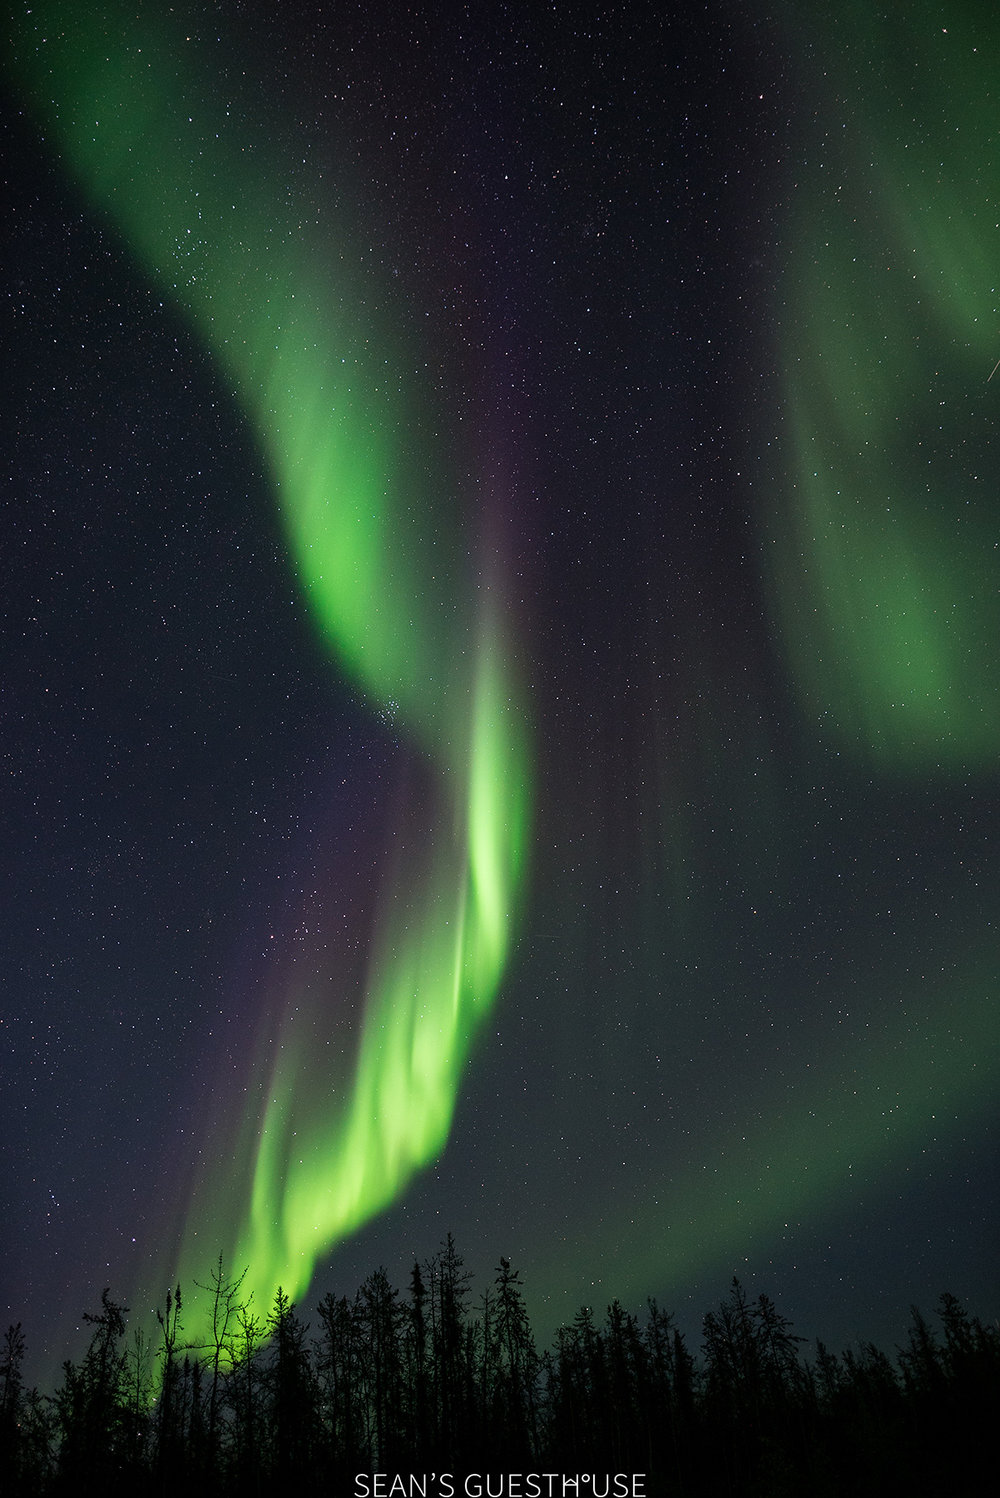 Sean's Guesthouse - Autumn Northern Lights Canada - 6.jpg